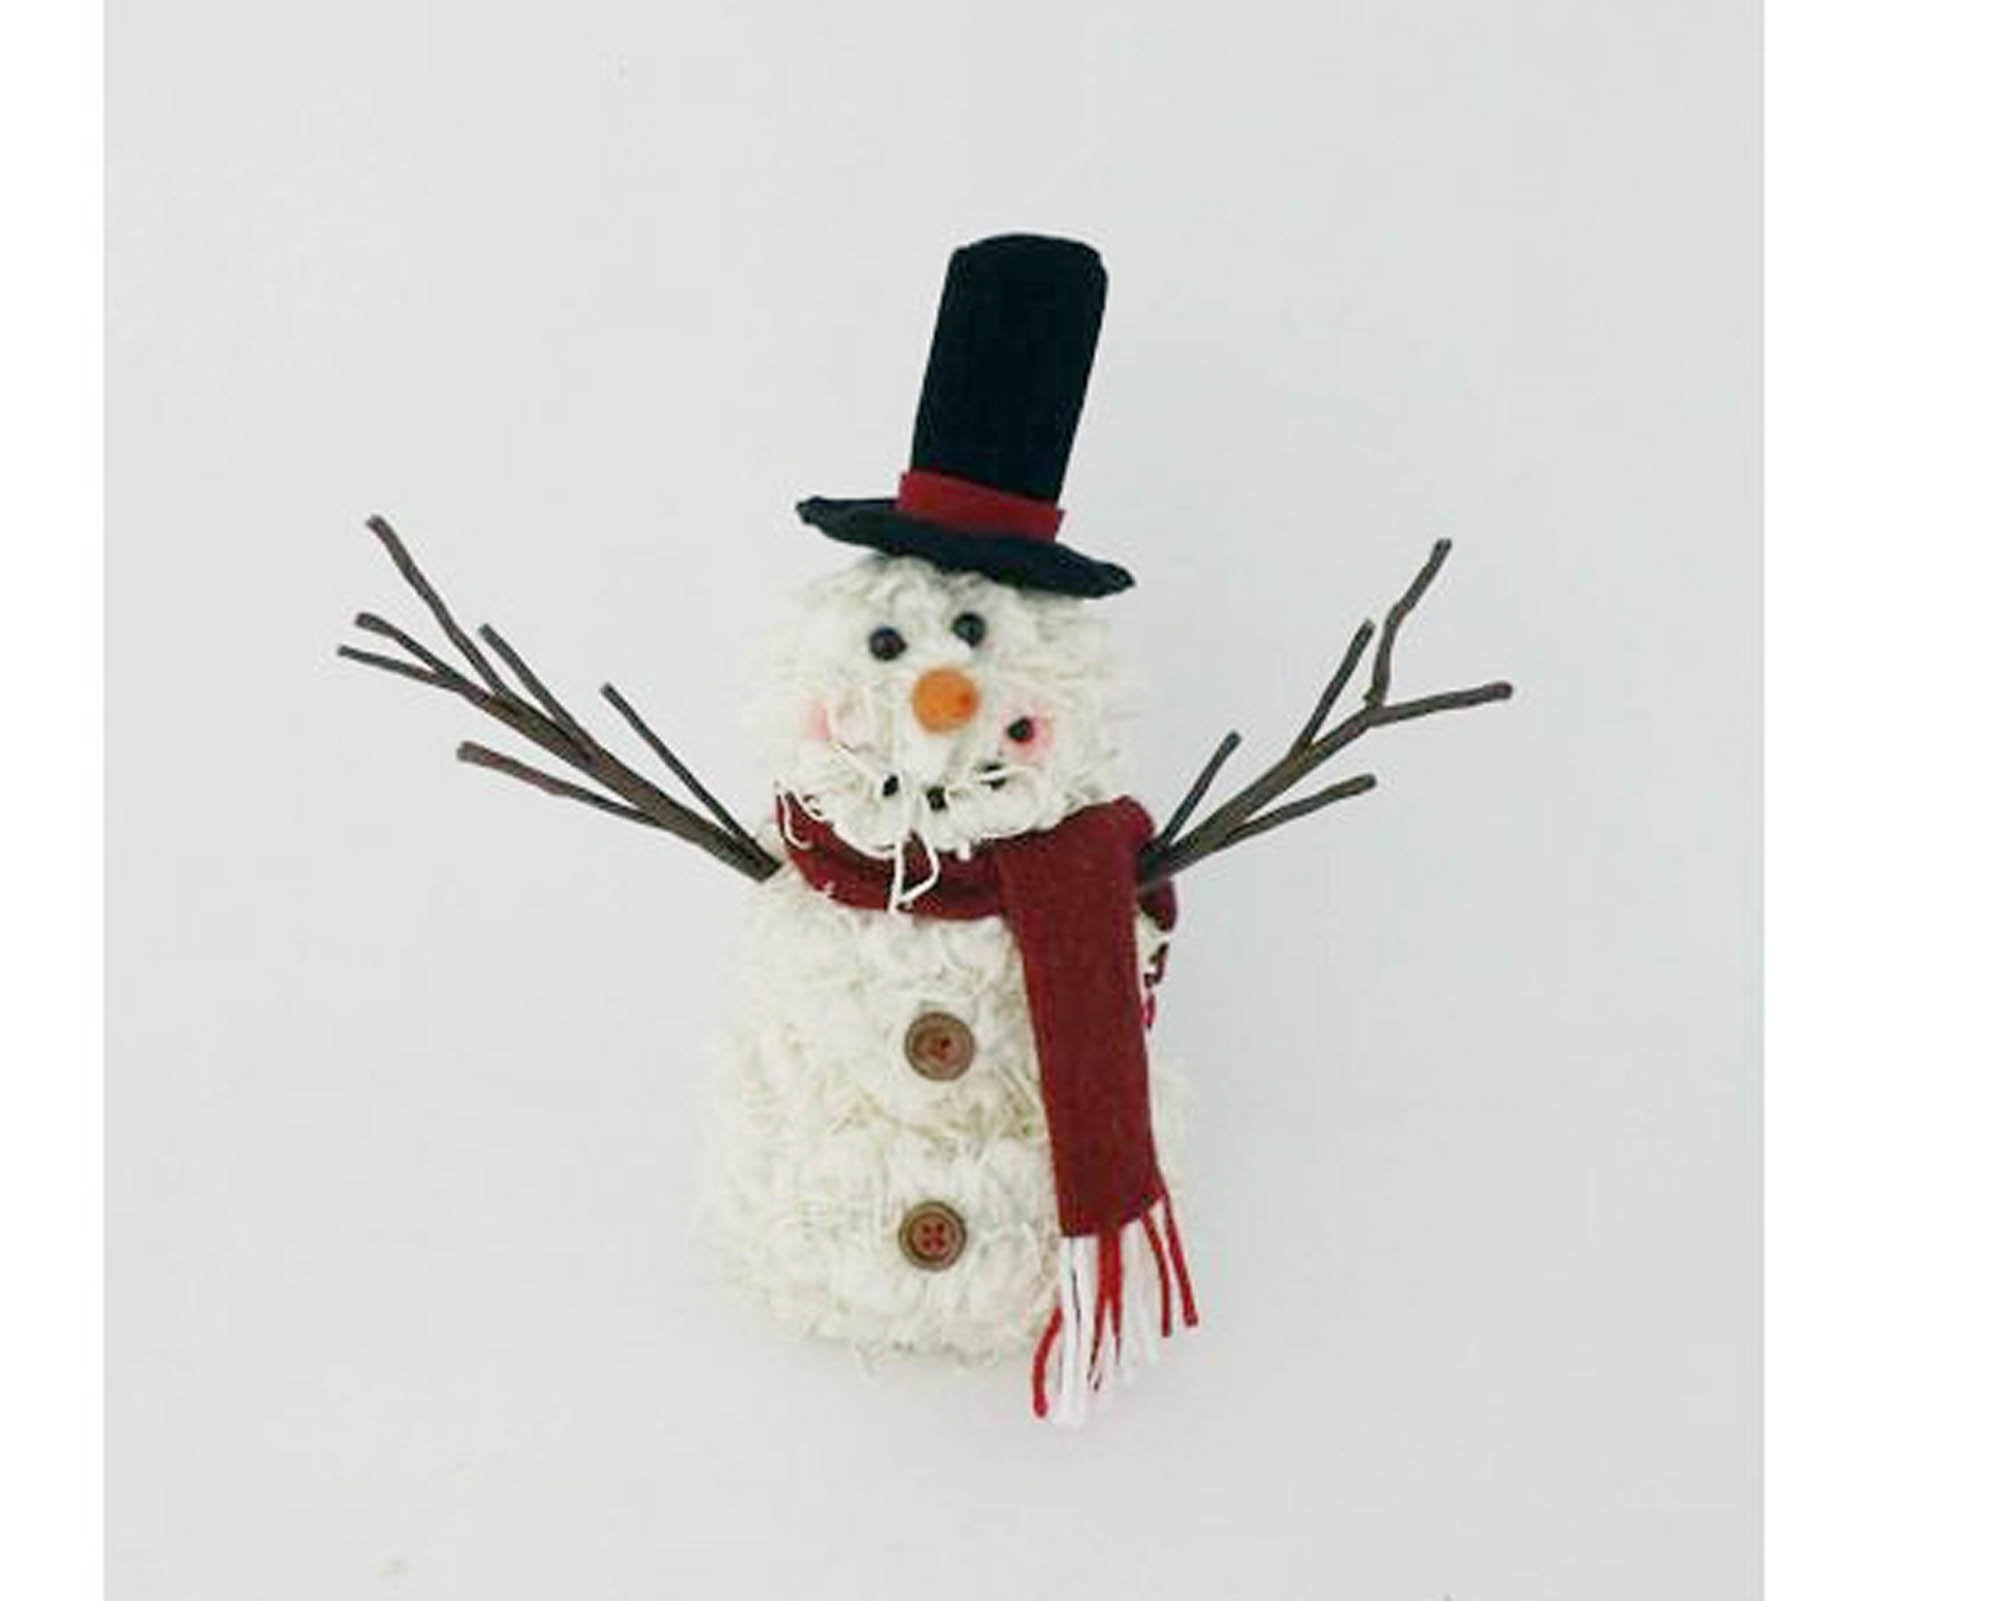 Chenille Fabric Half Body Snowman With Fabric Scarf Hat And Twig Arms Standing 9 5 Tall